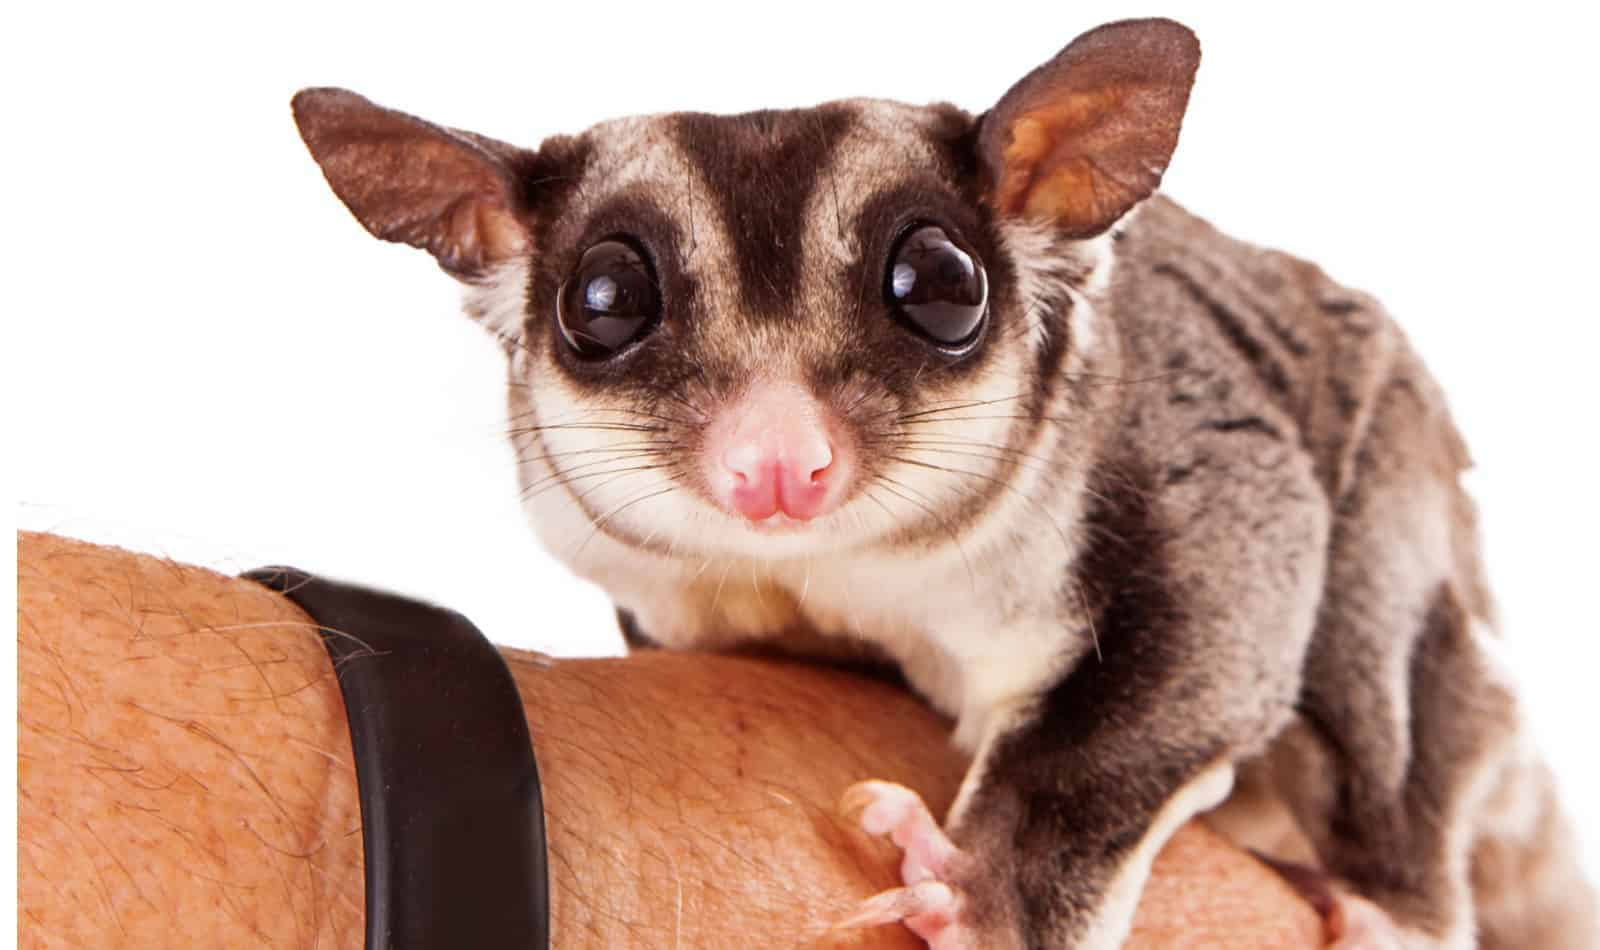 Thinking about getting a pair of cinnamon sugar gliders to add to your fur family? Here is everything you need to know about them!